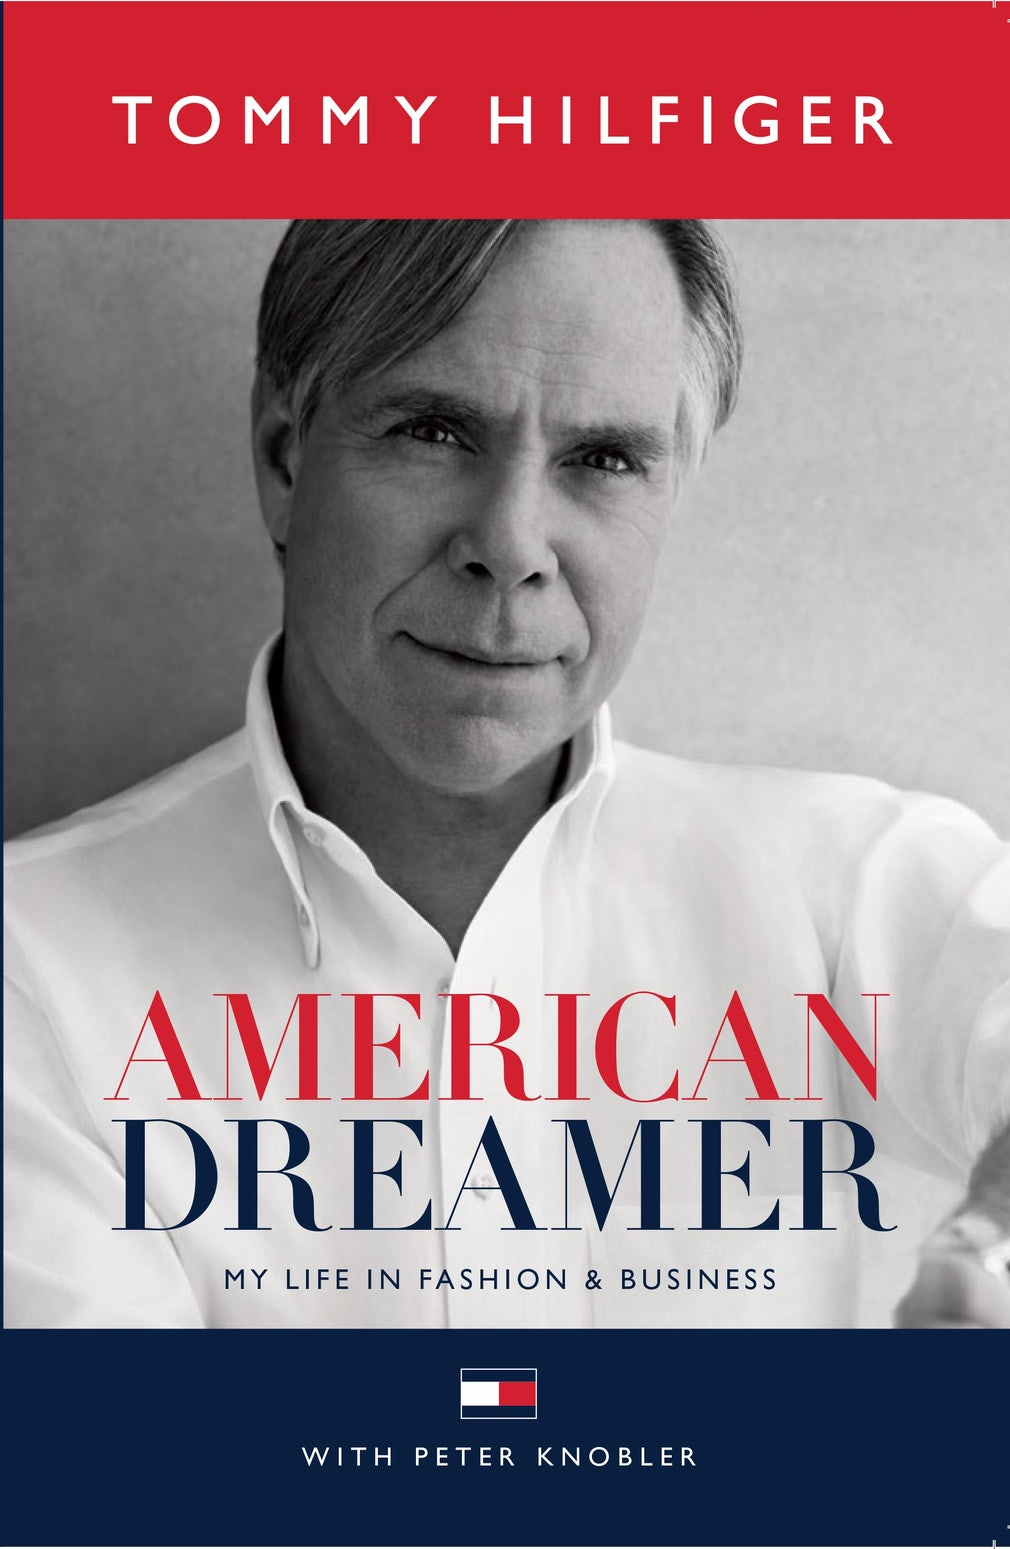 cf96fe1c CFDA Reads: American Dreamer by Tommy Hilfiger | News | CFDA